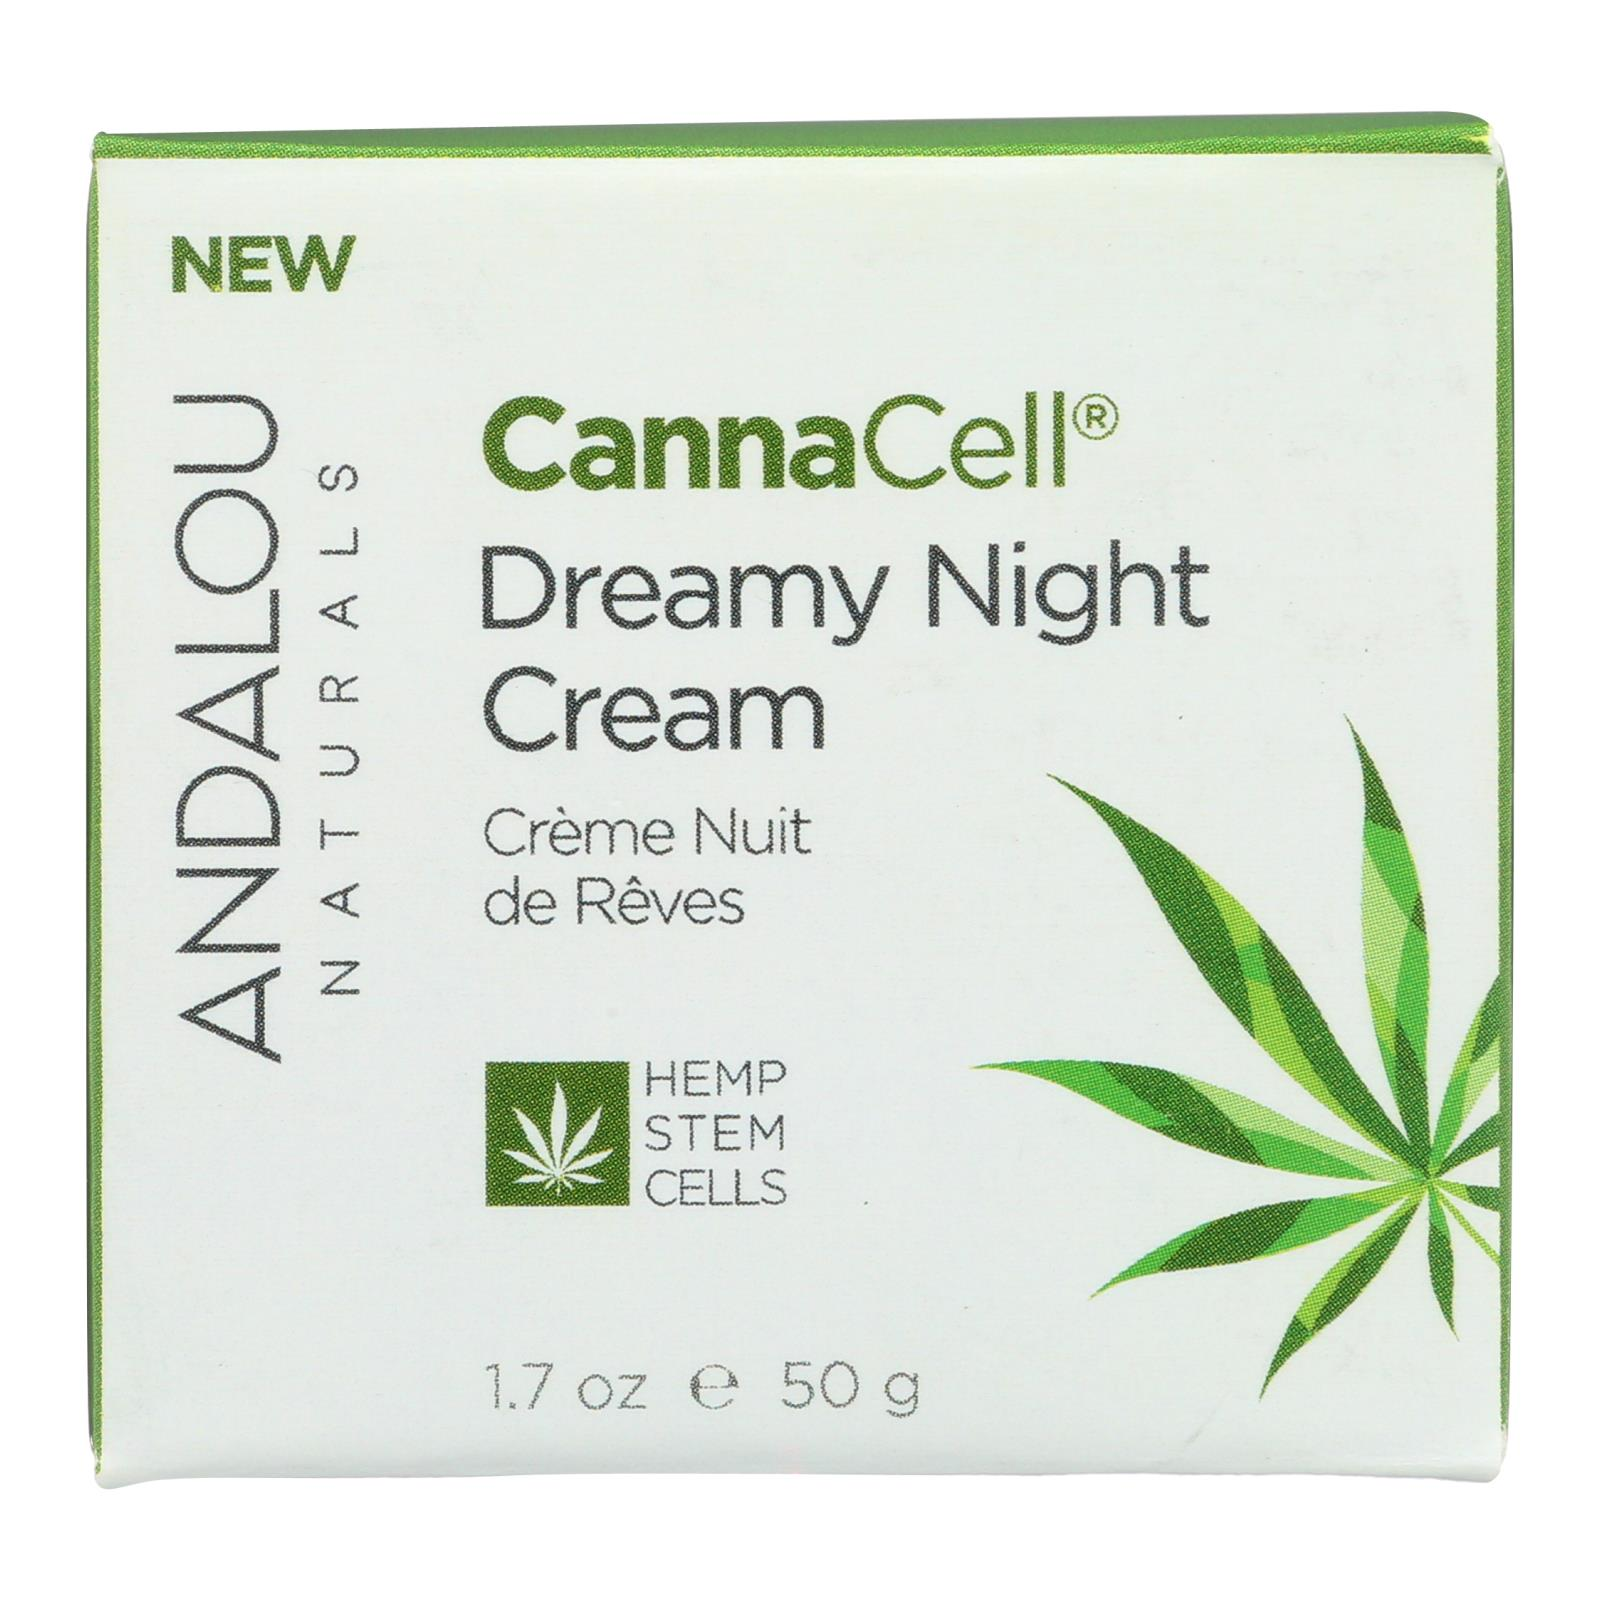 Andalou Naturals - CannaCell Dreamy Night Cream - 1.7 oz.